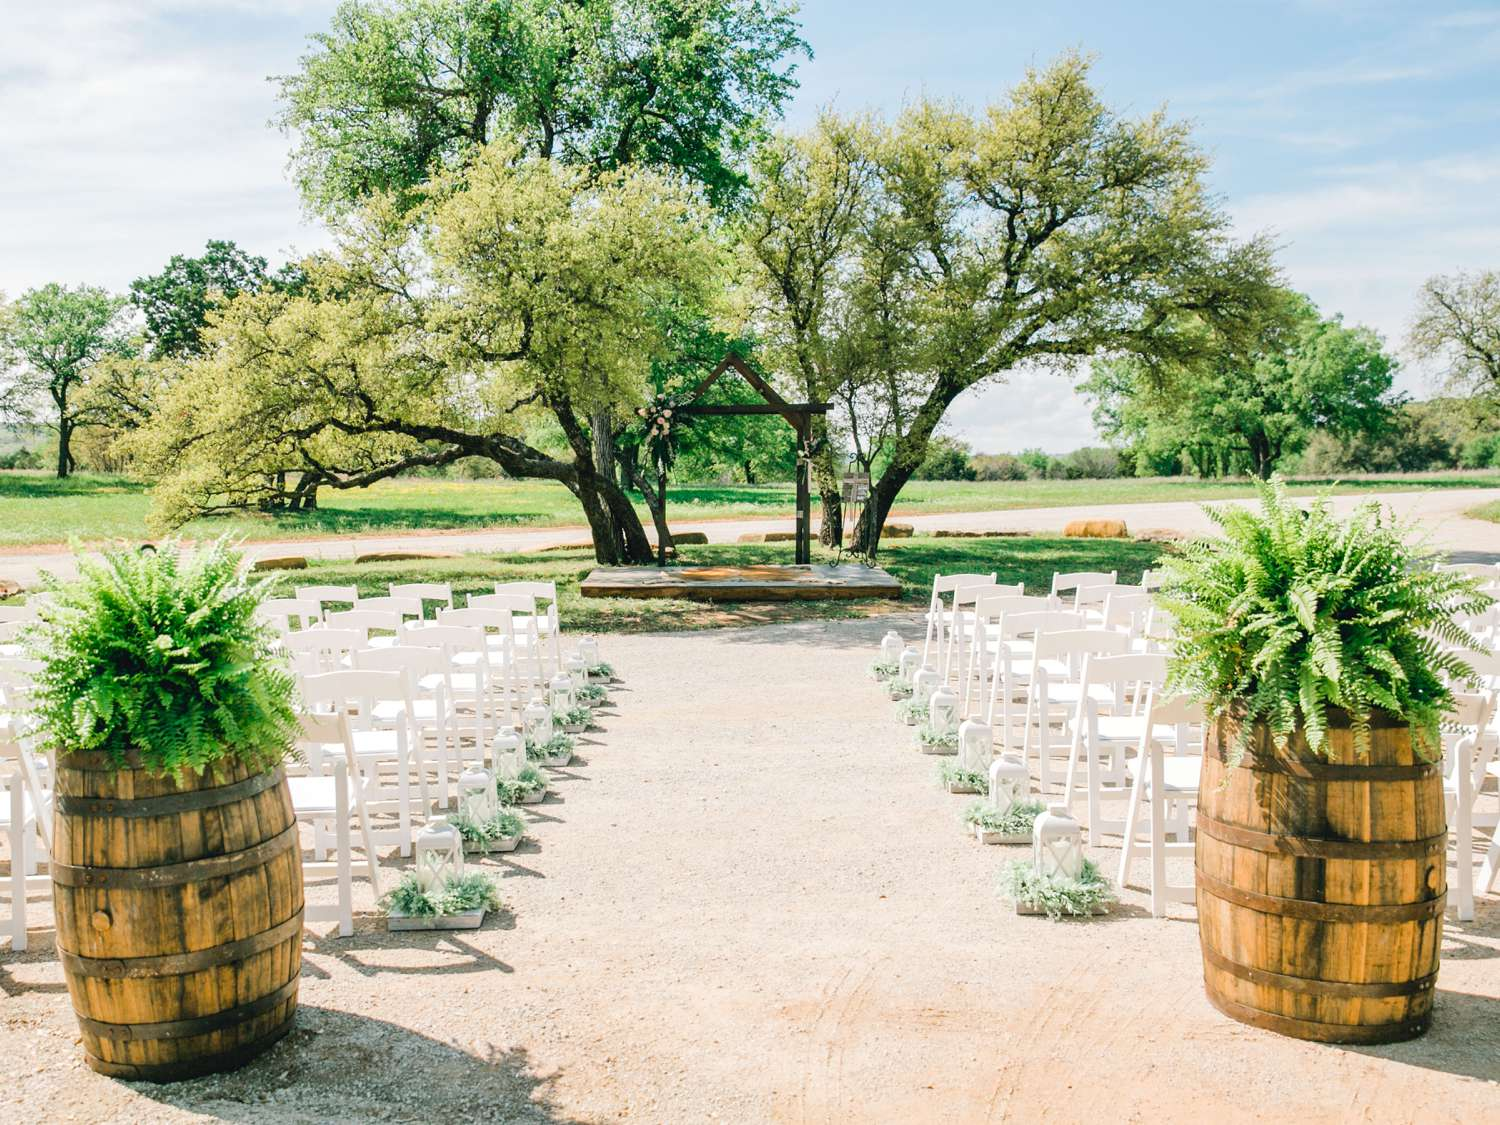 SARAH+TREVOR+BADGETT+SPARROW+CREEK+GRAHAM+TEXAS+ALLEEJ+WEDDINGS_0041.jpg